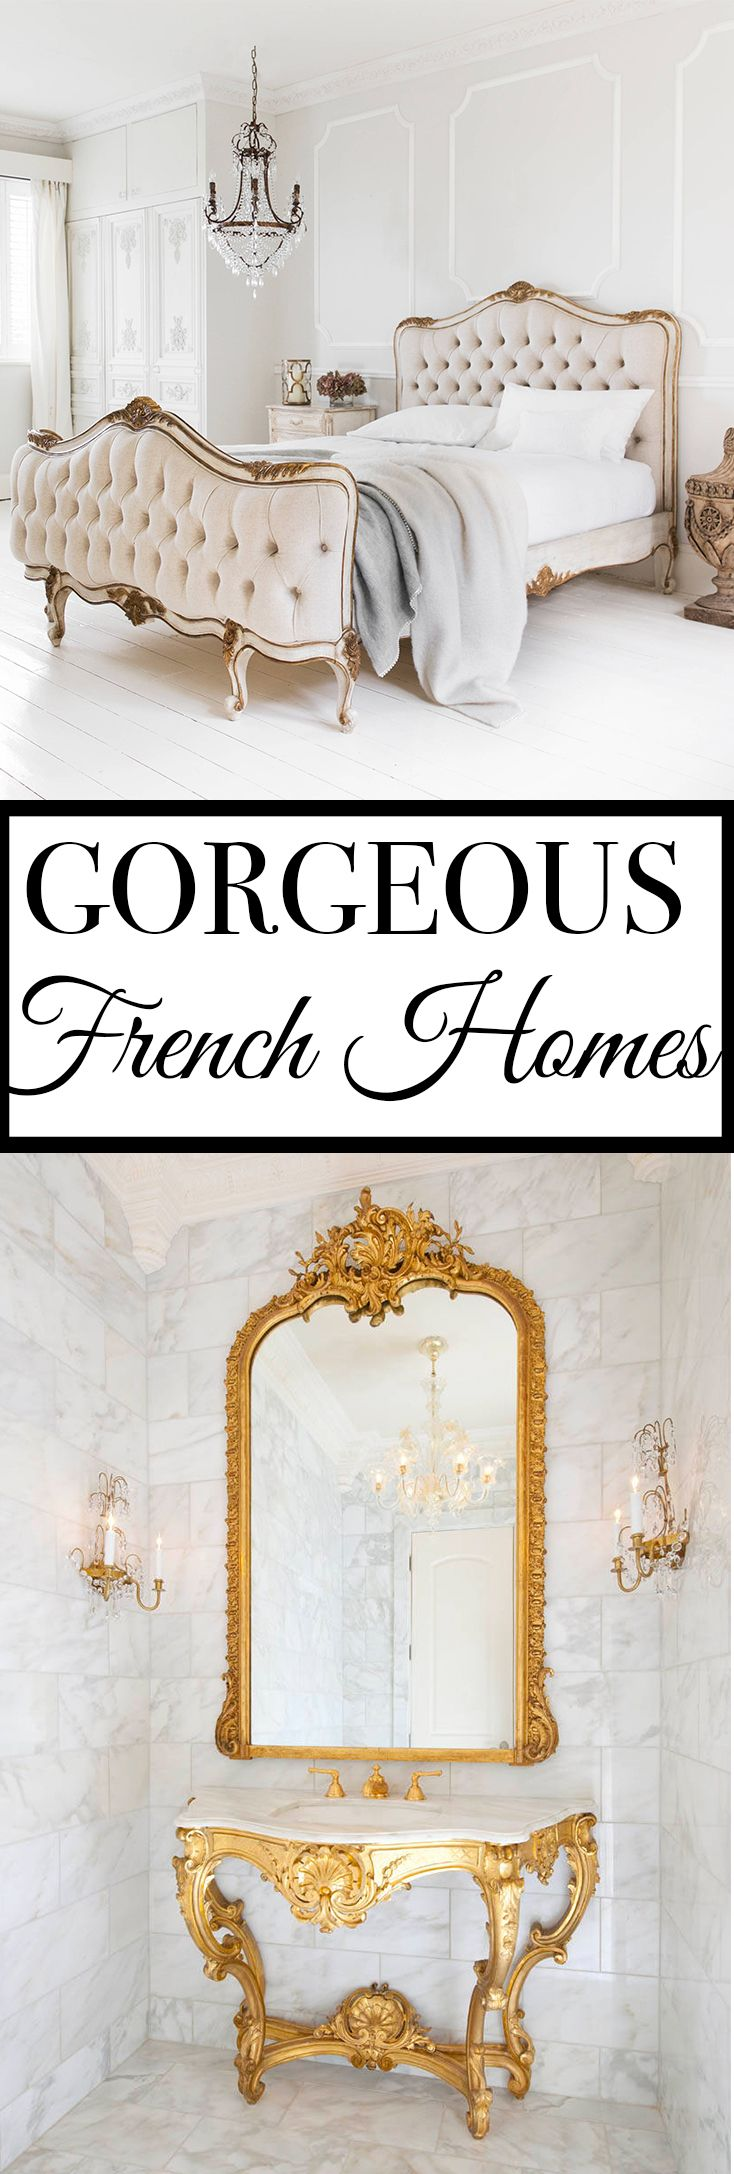 3 Secrets To French Decorating: Versailles Inspired Rooms